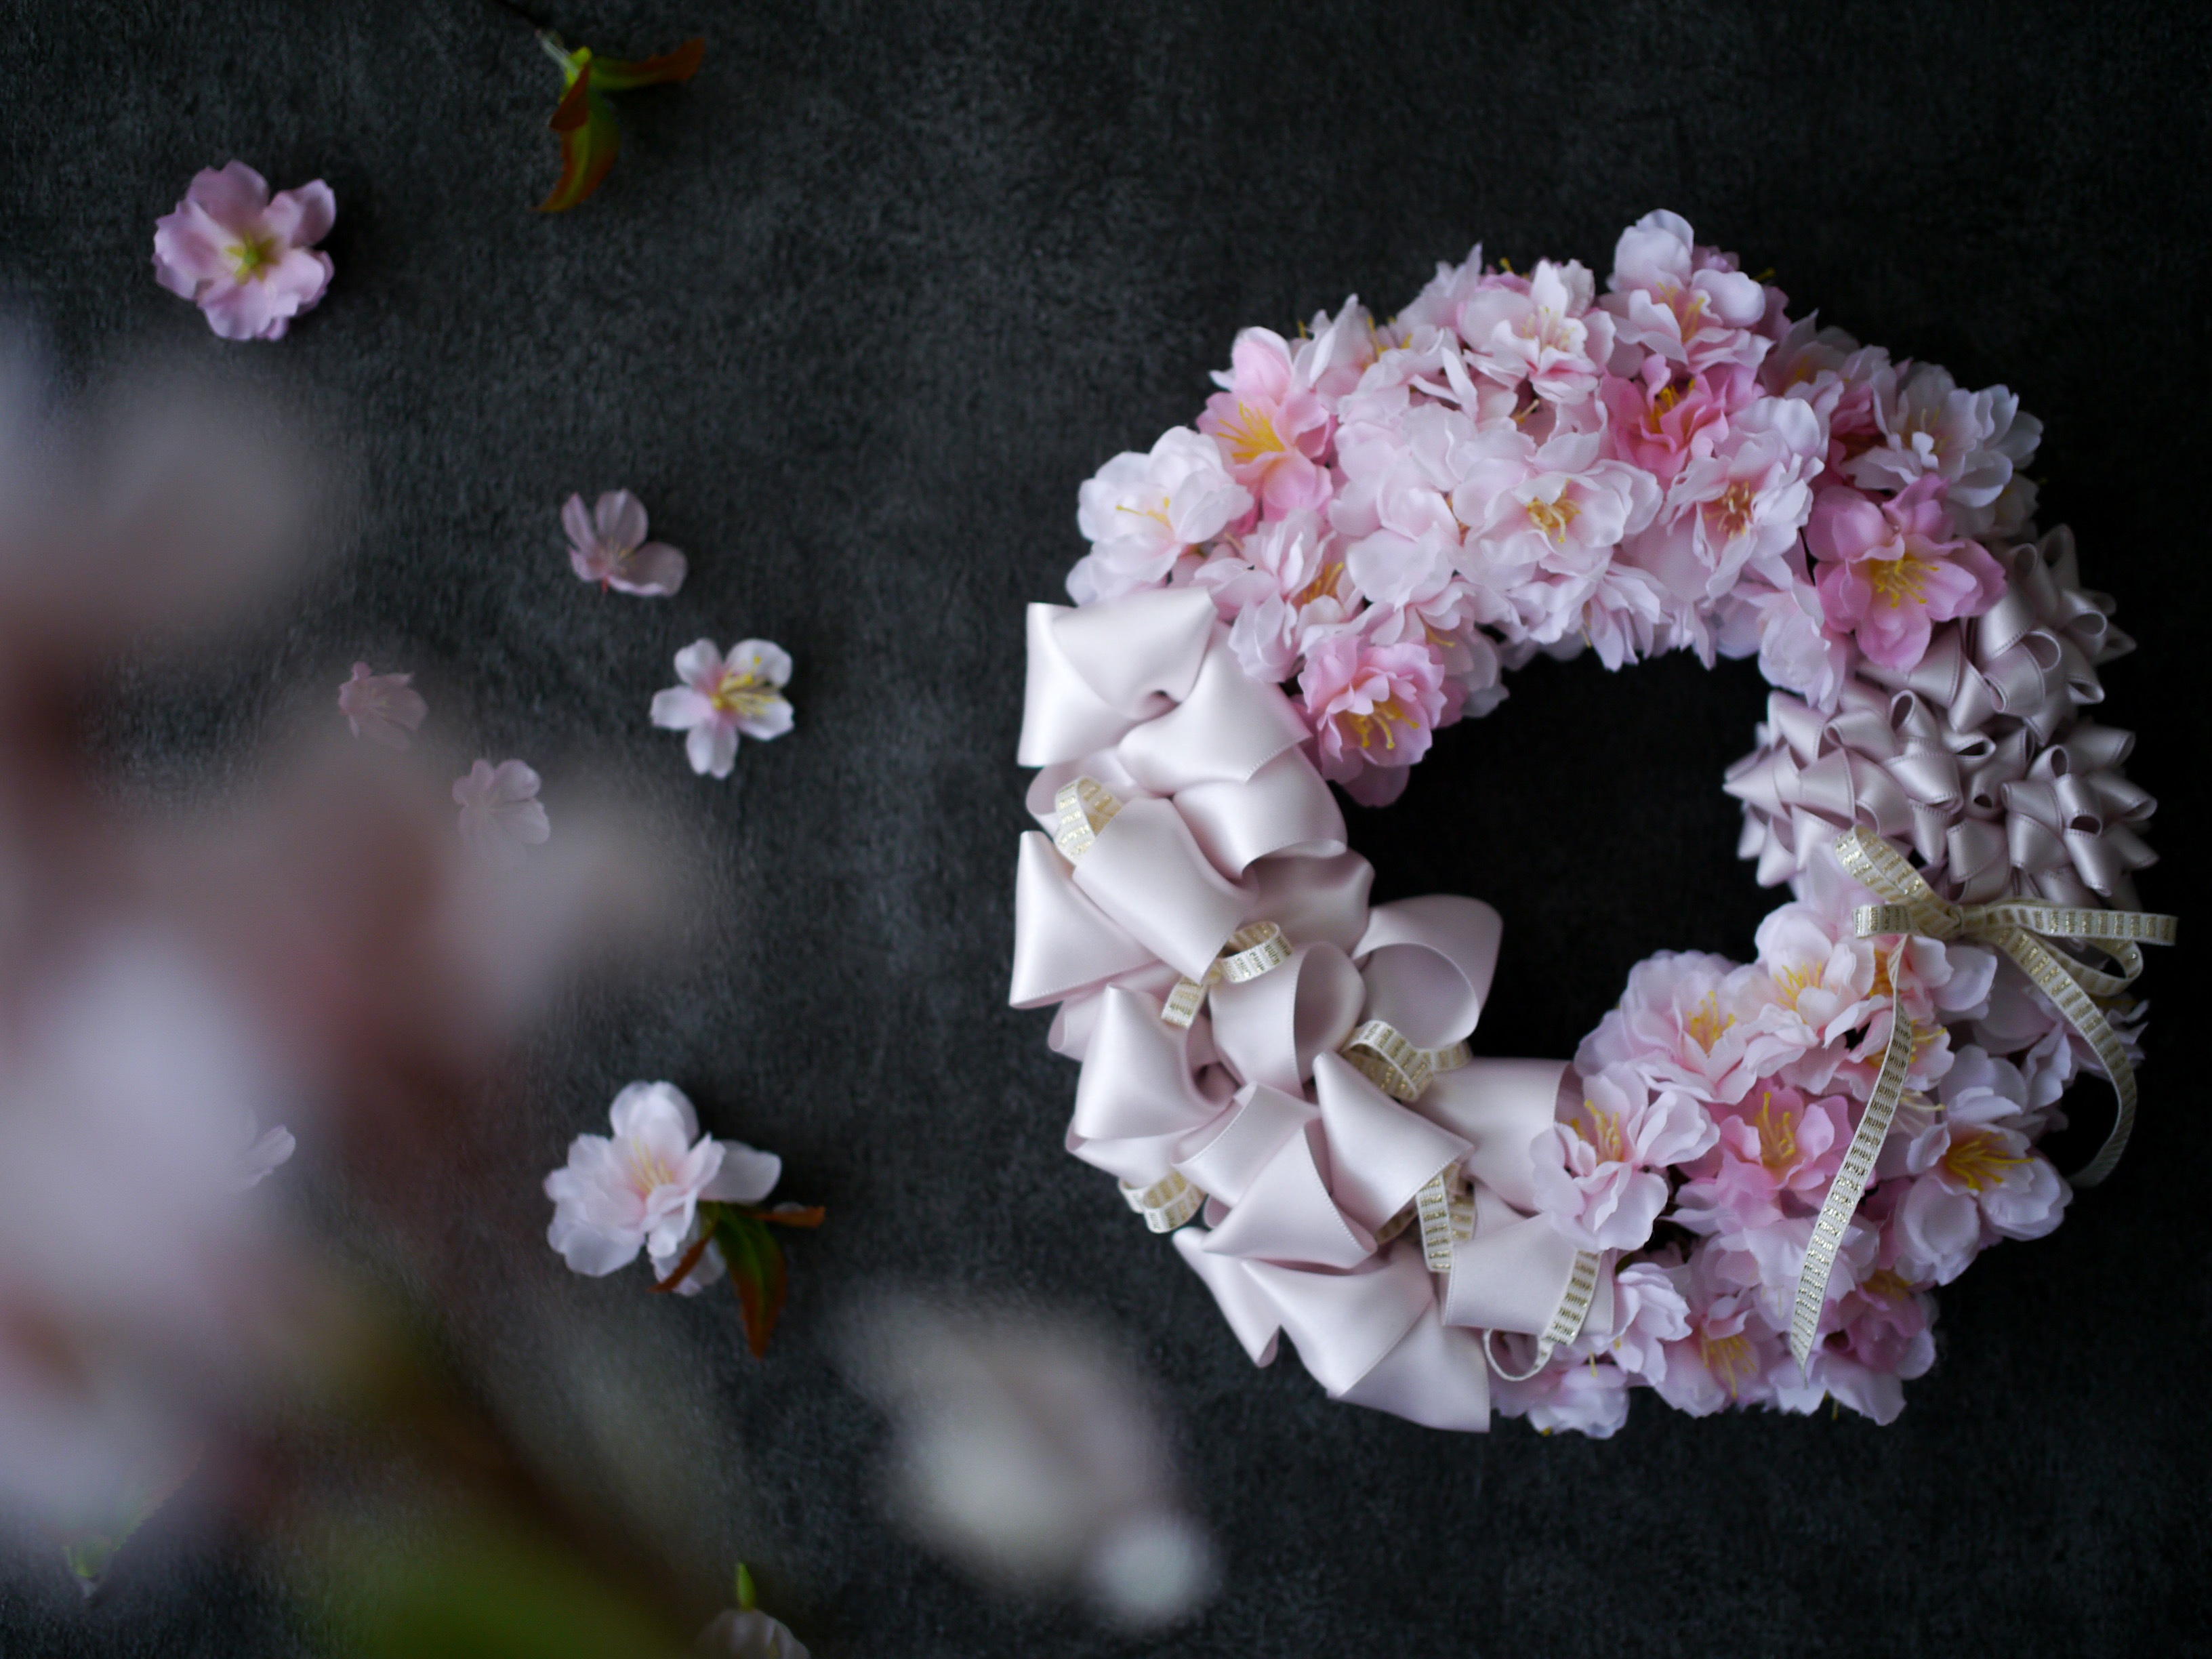 SAKURA wreath